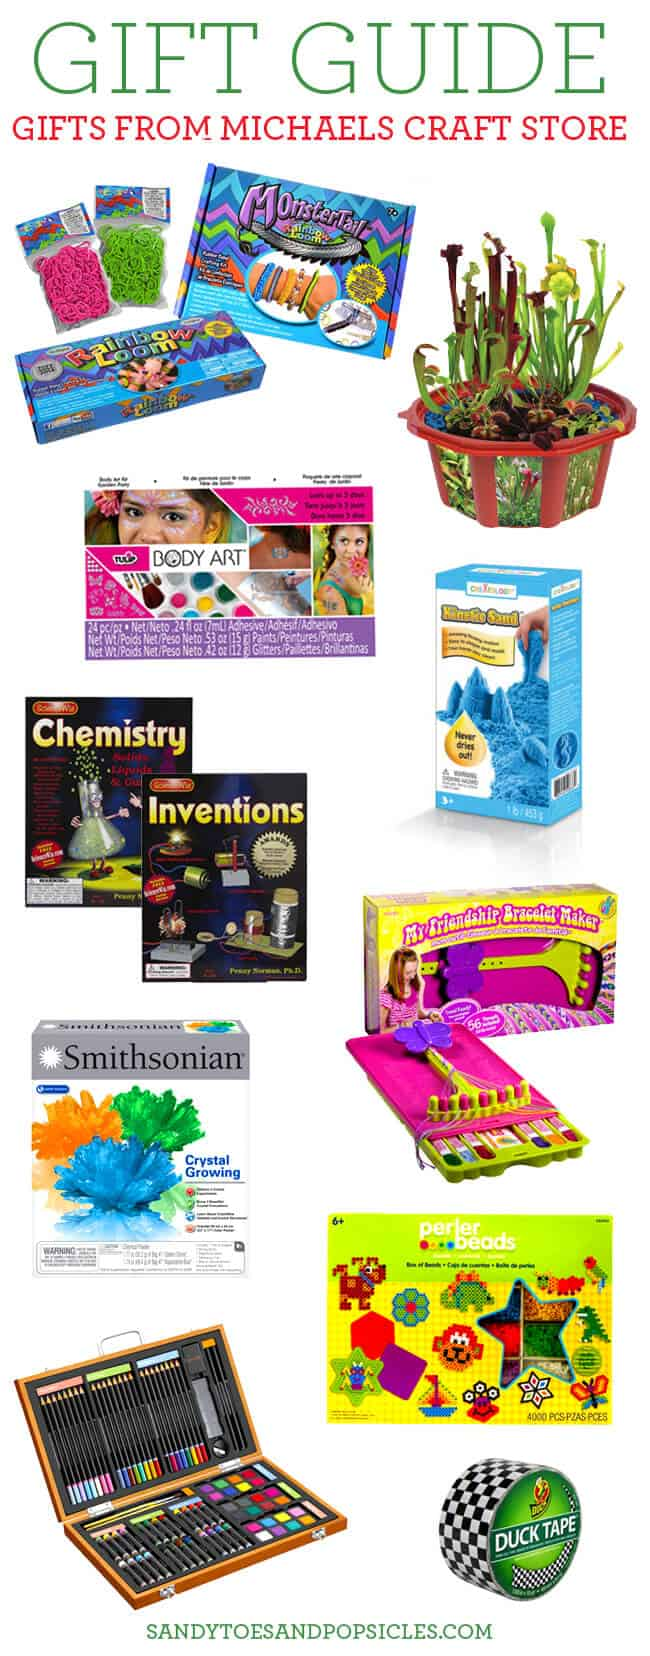 michaels-craft-store-gift-guide